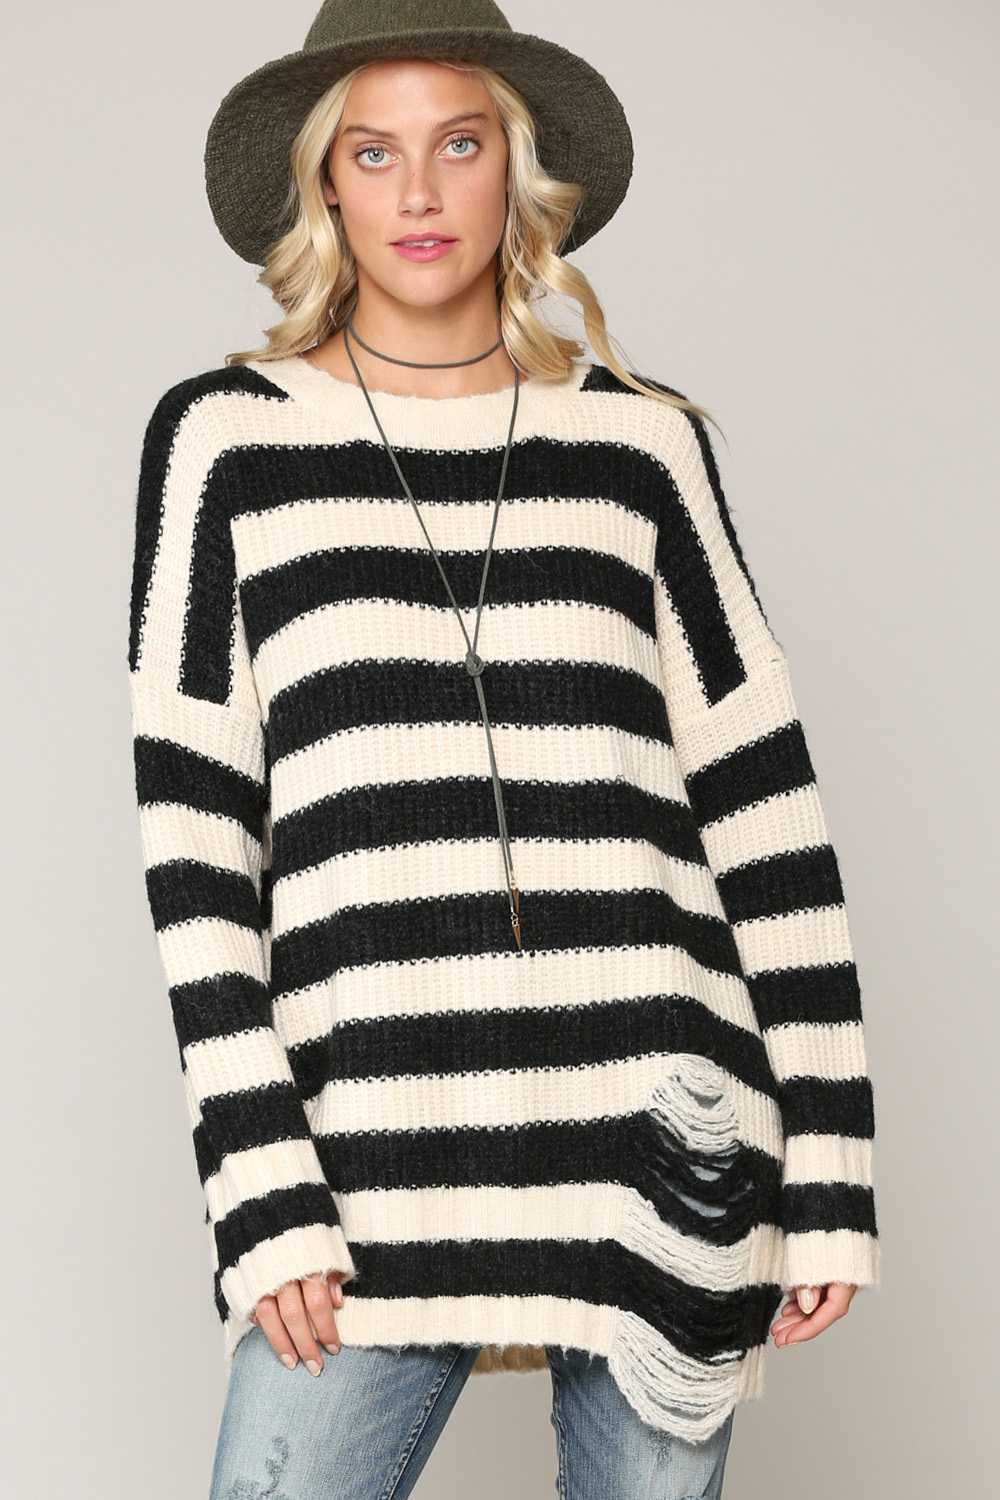 STRIPED DISTRESSED DETAILED KNIT TOP